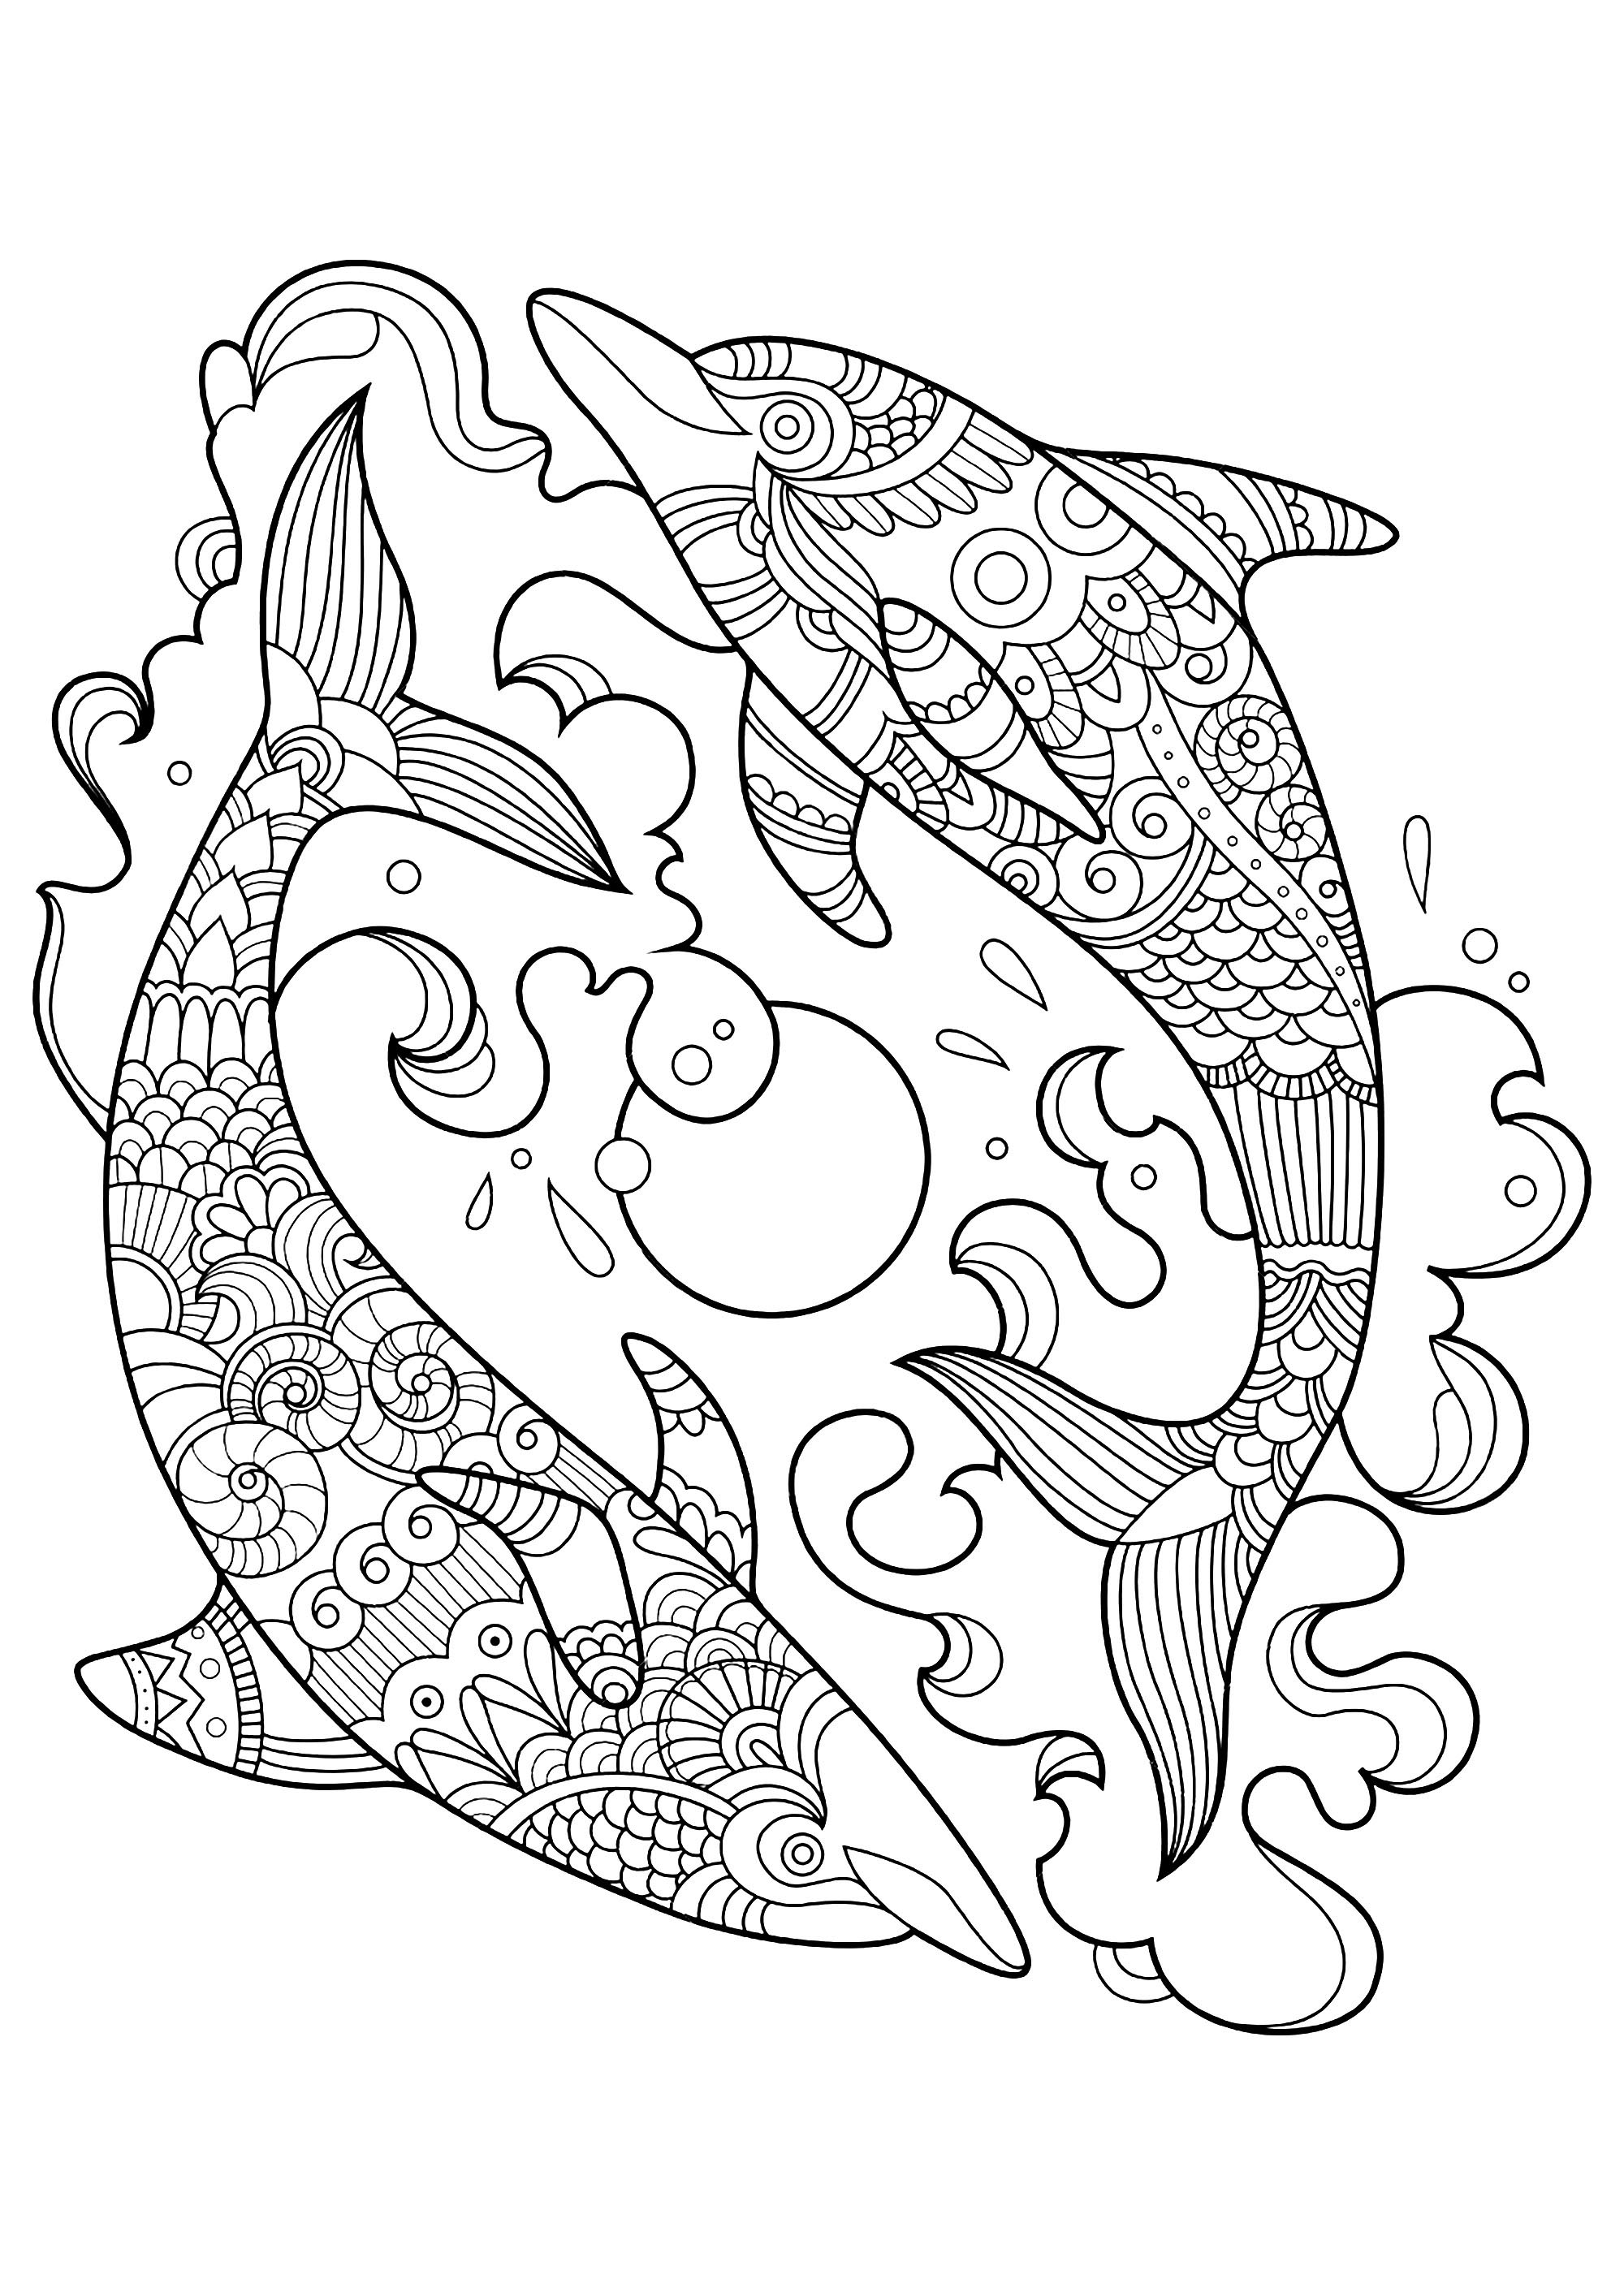 Dolphins to color for children